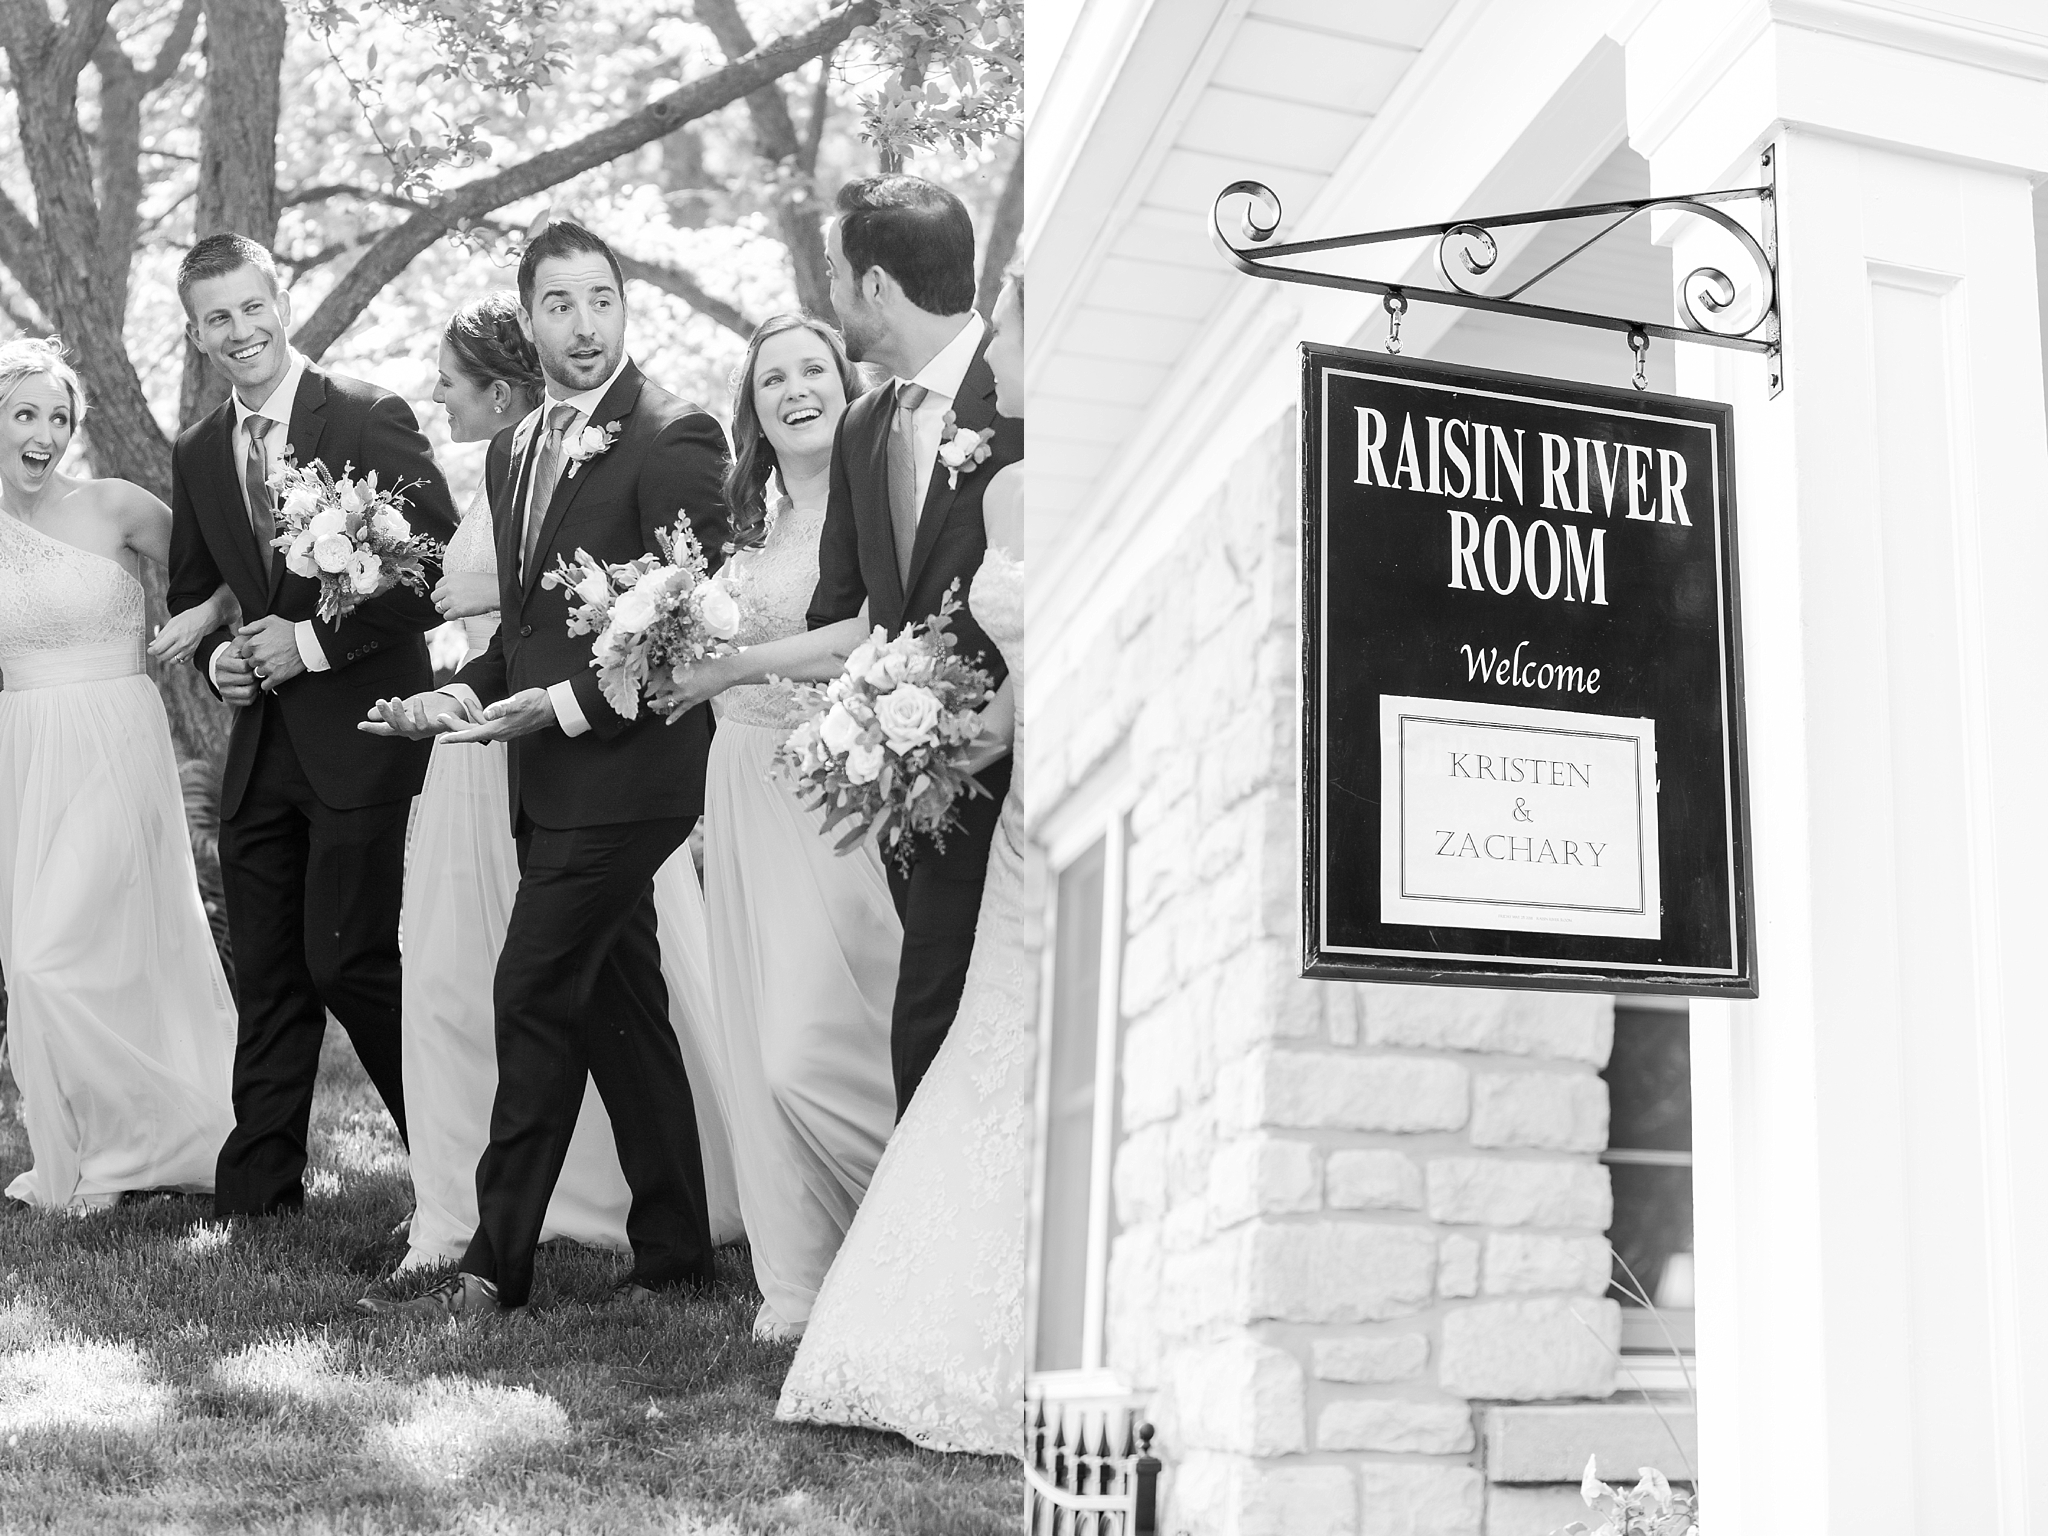 fun-candid-laid-back-wedding-photos-at-wellers-carriage-house-in-saline-michigan-and-at-the-eagle-crest-golf-resort-by-courtney-carolyn-photography_0030.jpg